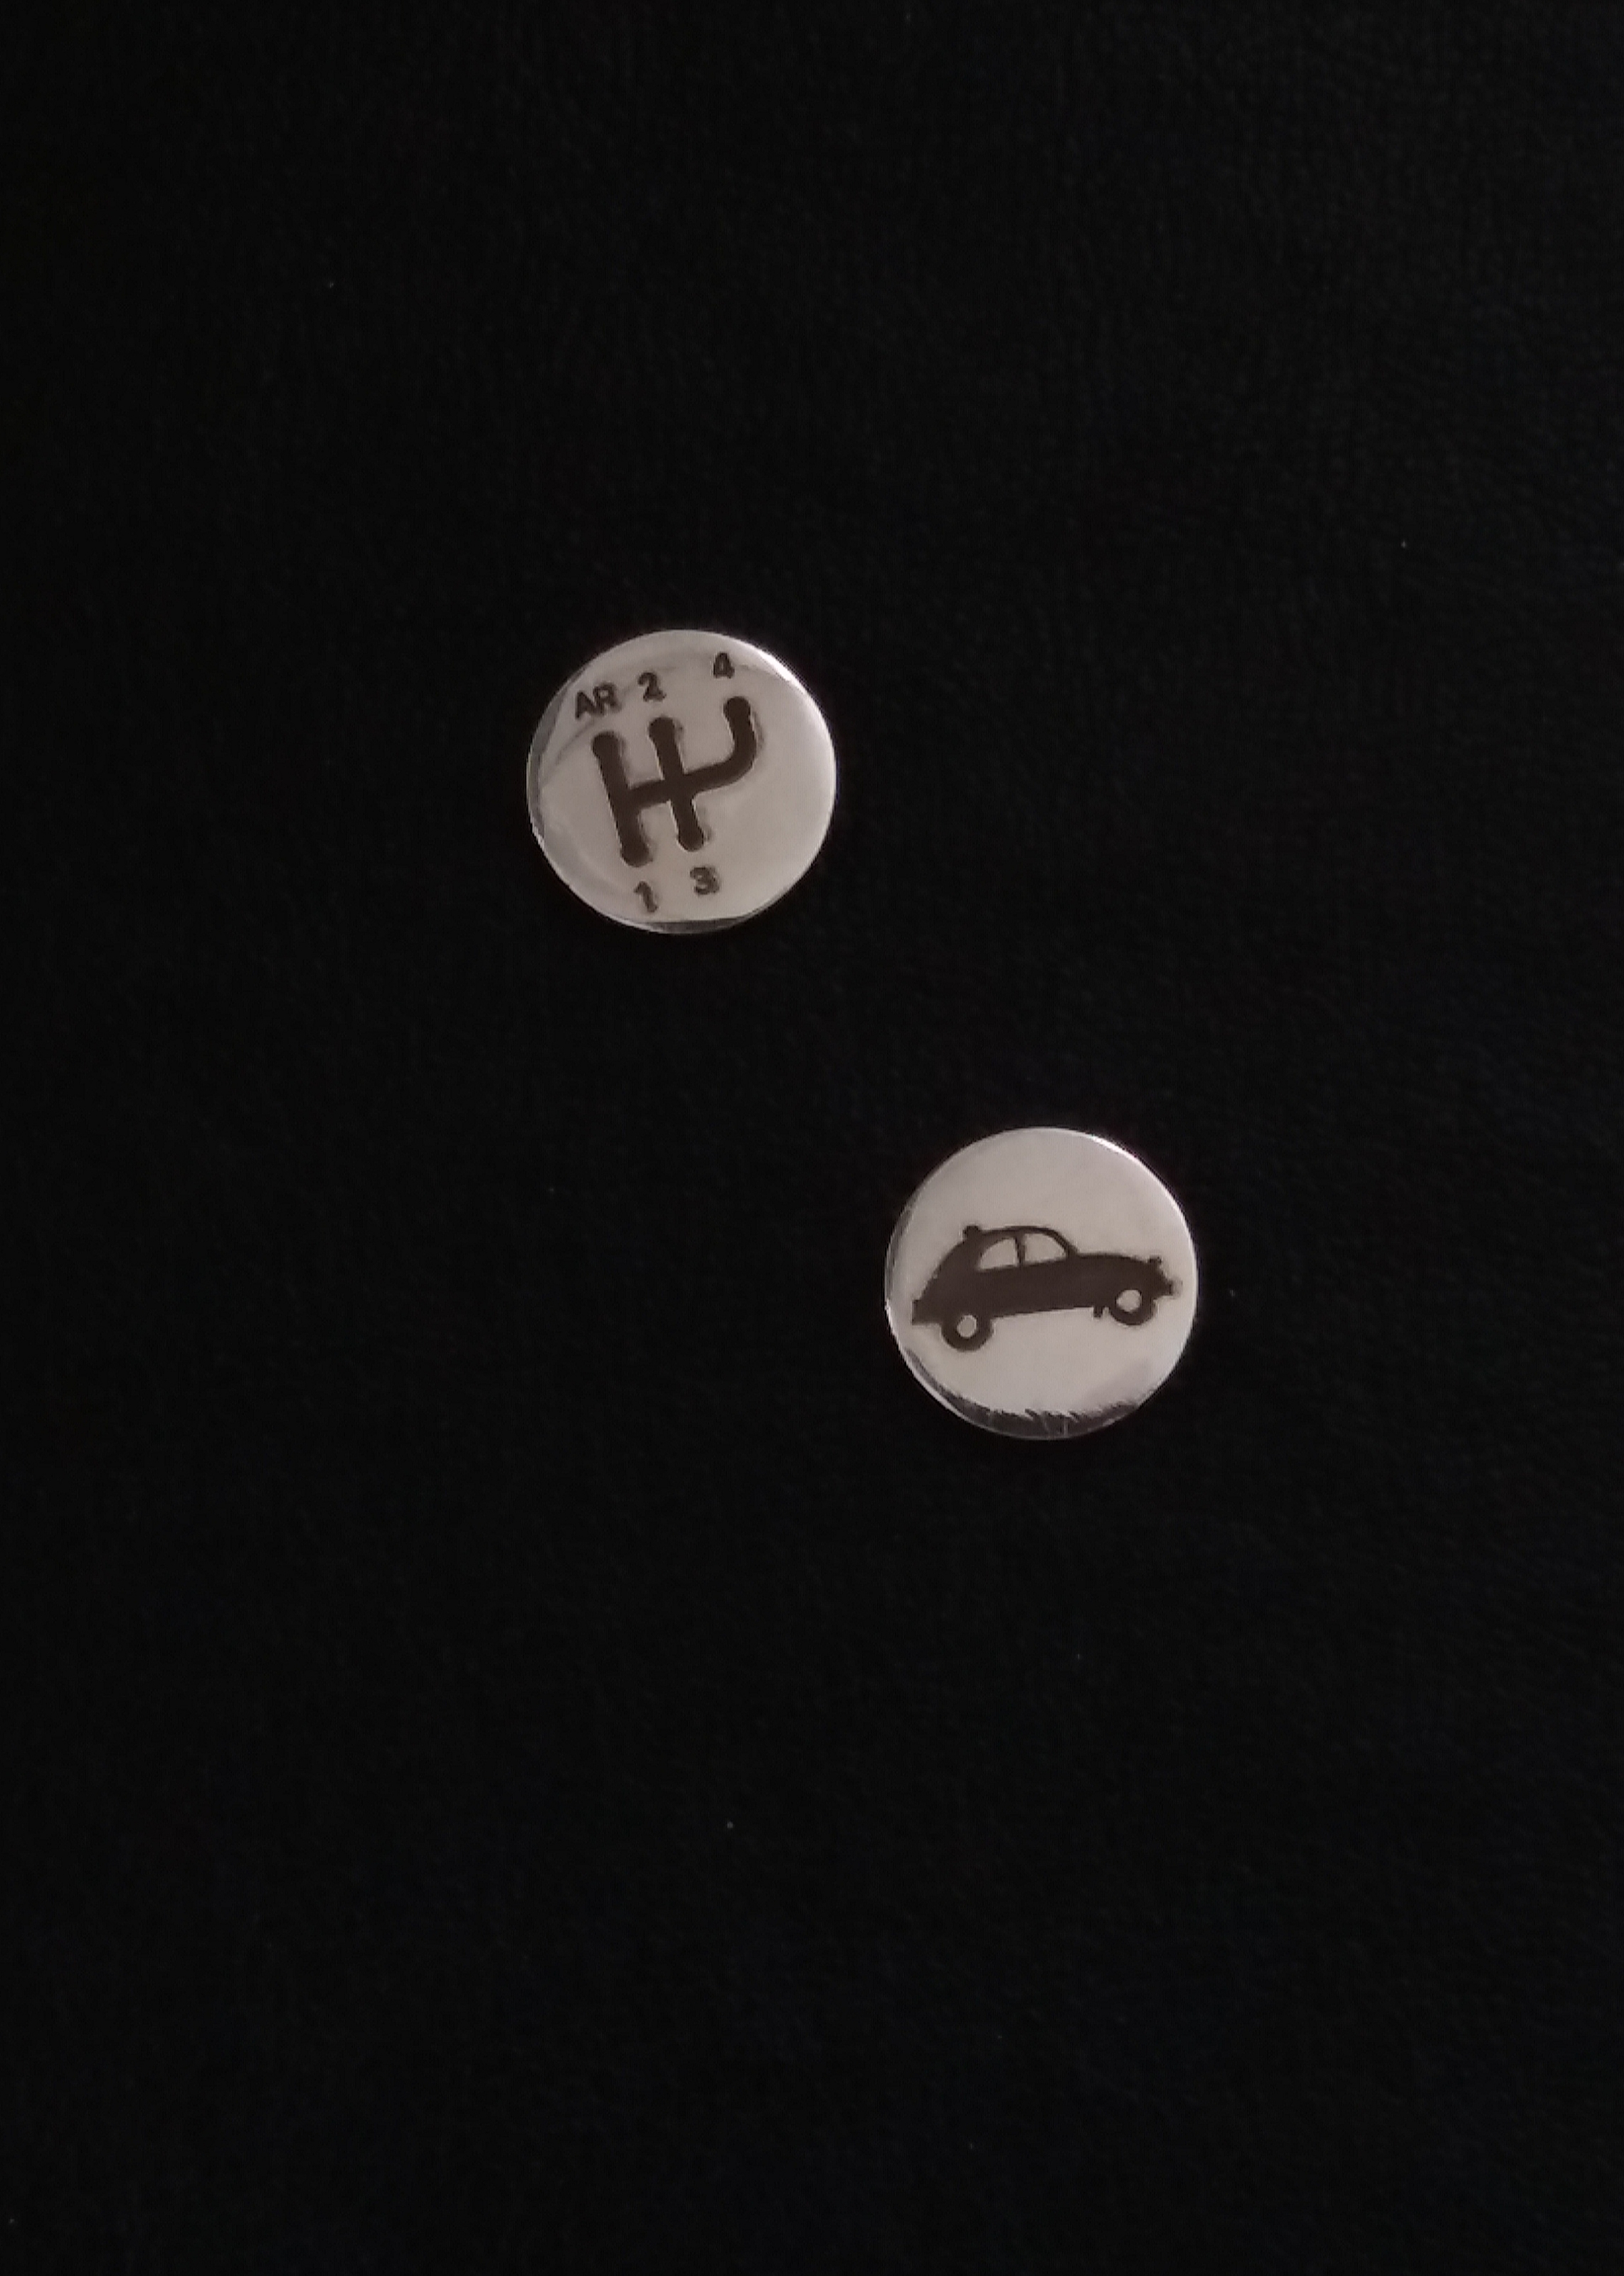 Citroen 2cv shift pattern carjewellery silver  car jewel earrings pendant